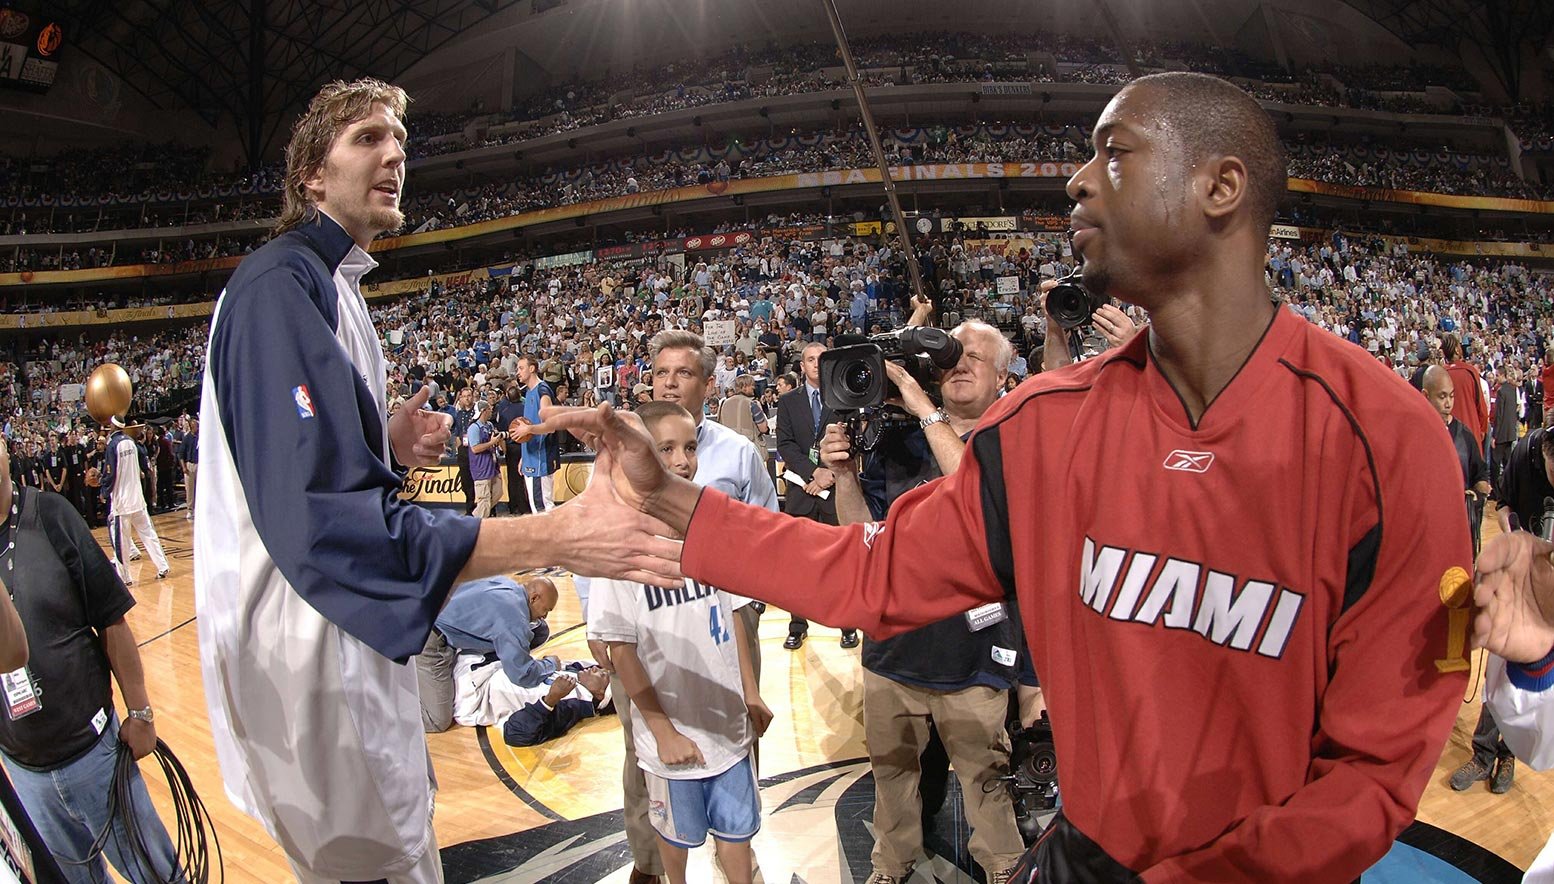 Dwayne Wade shakes hands with Dirk Nowitzki following the 2006 NBA Finals